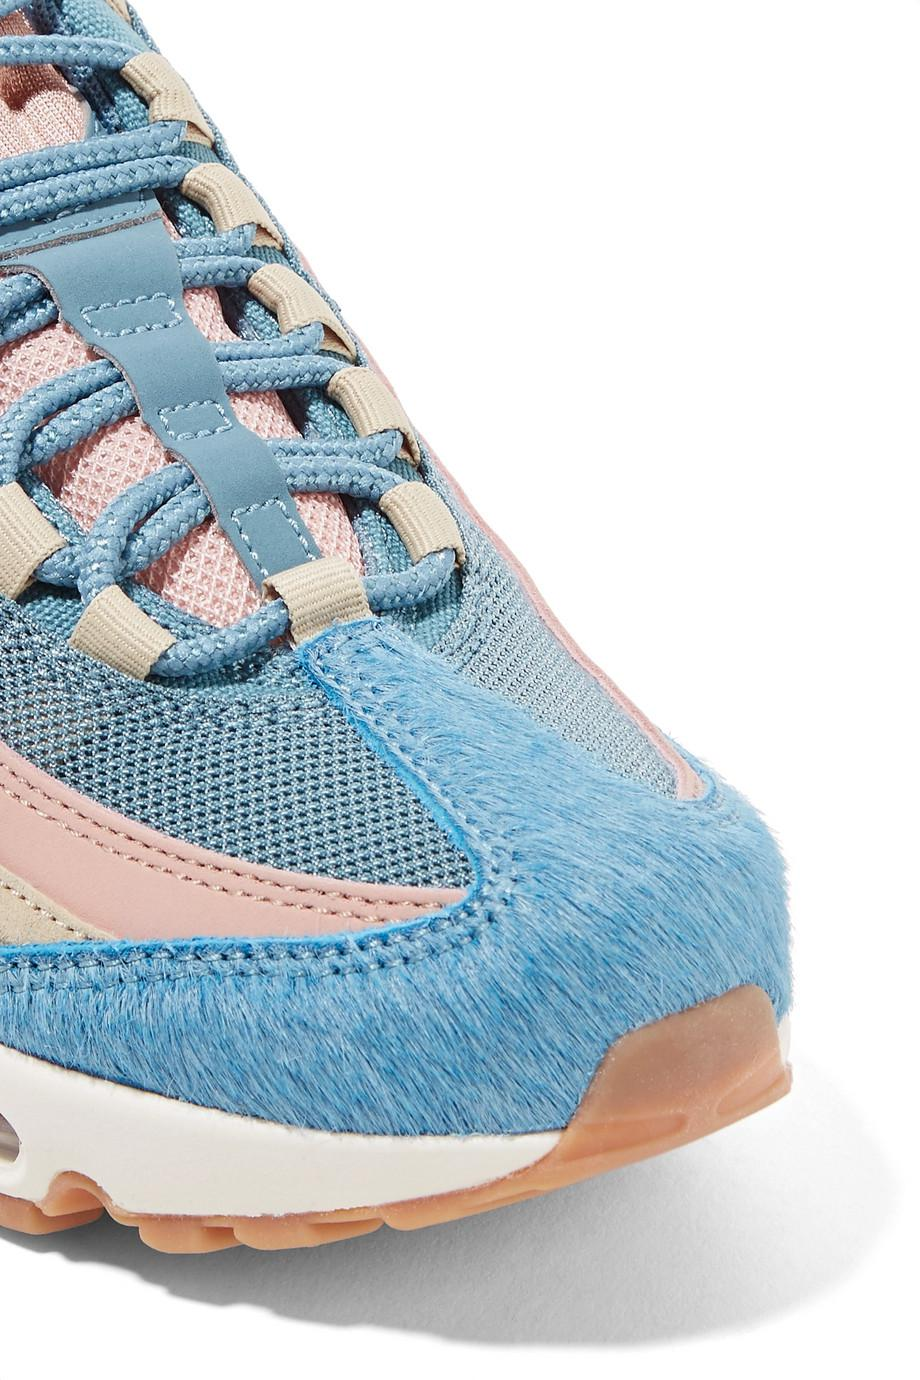 new product 8a250 bf535 Lyst - Nike Air Max 95 Calf Hair, Suede And Mesh Sneakers in